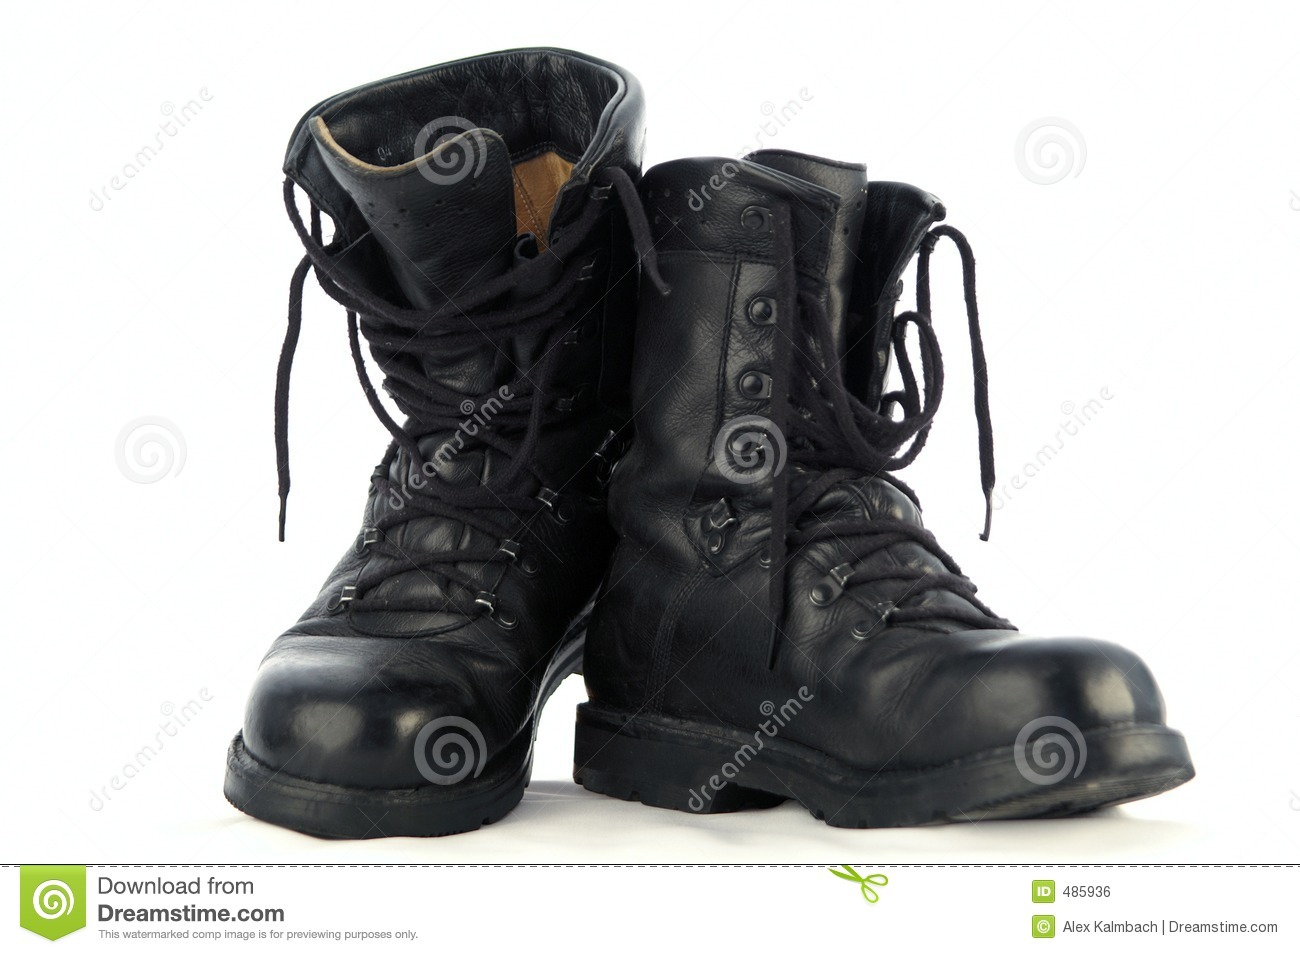 Army Boots Royalty Free Stock Image   Image  485936